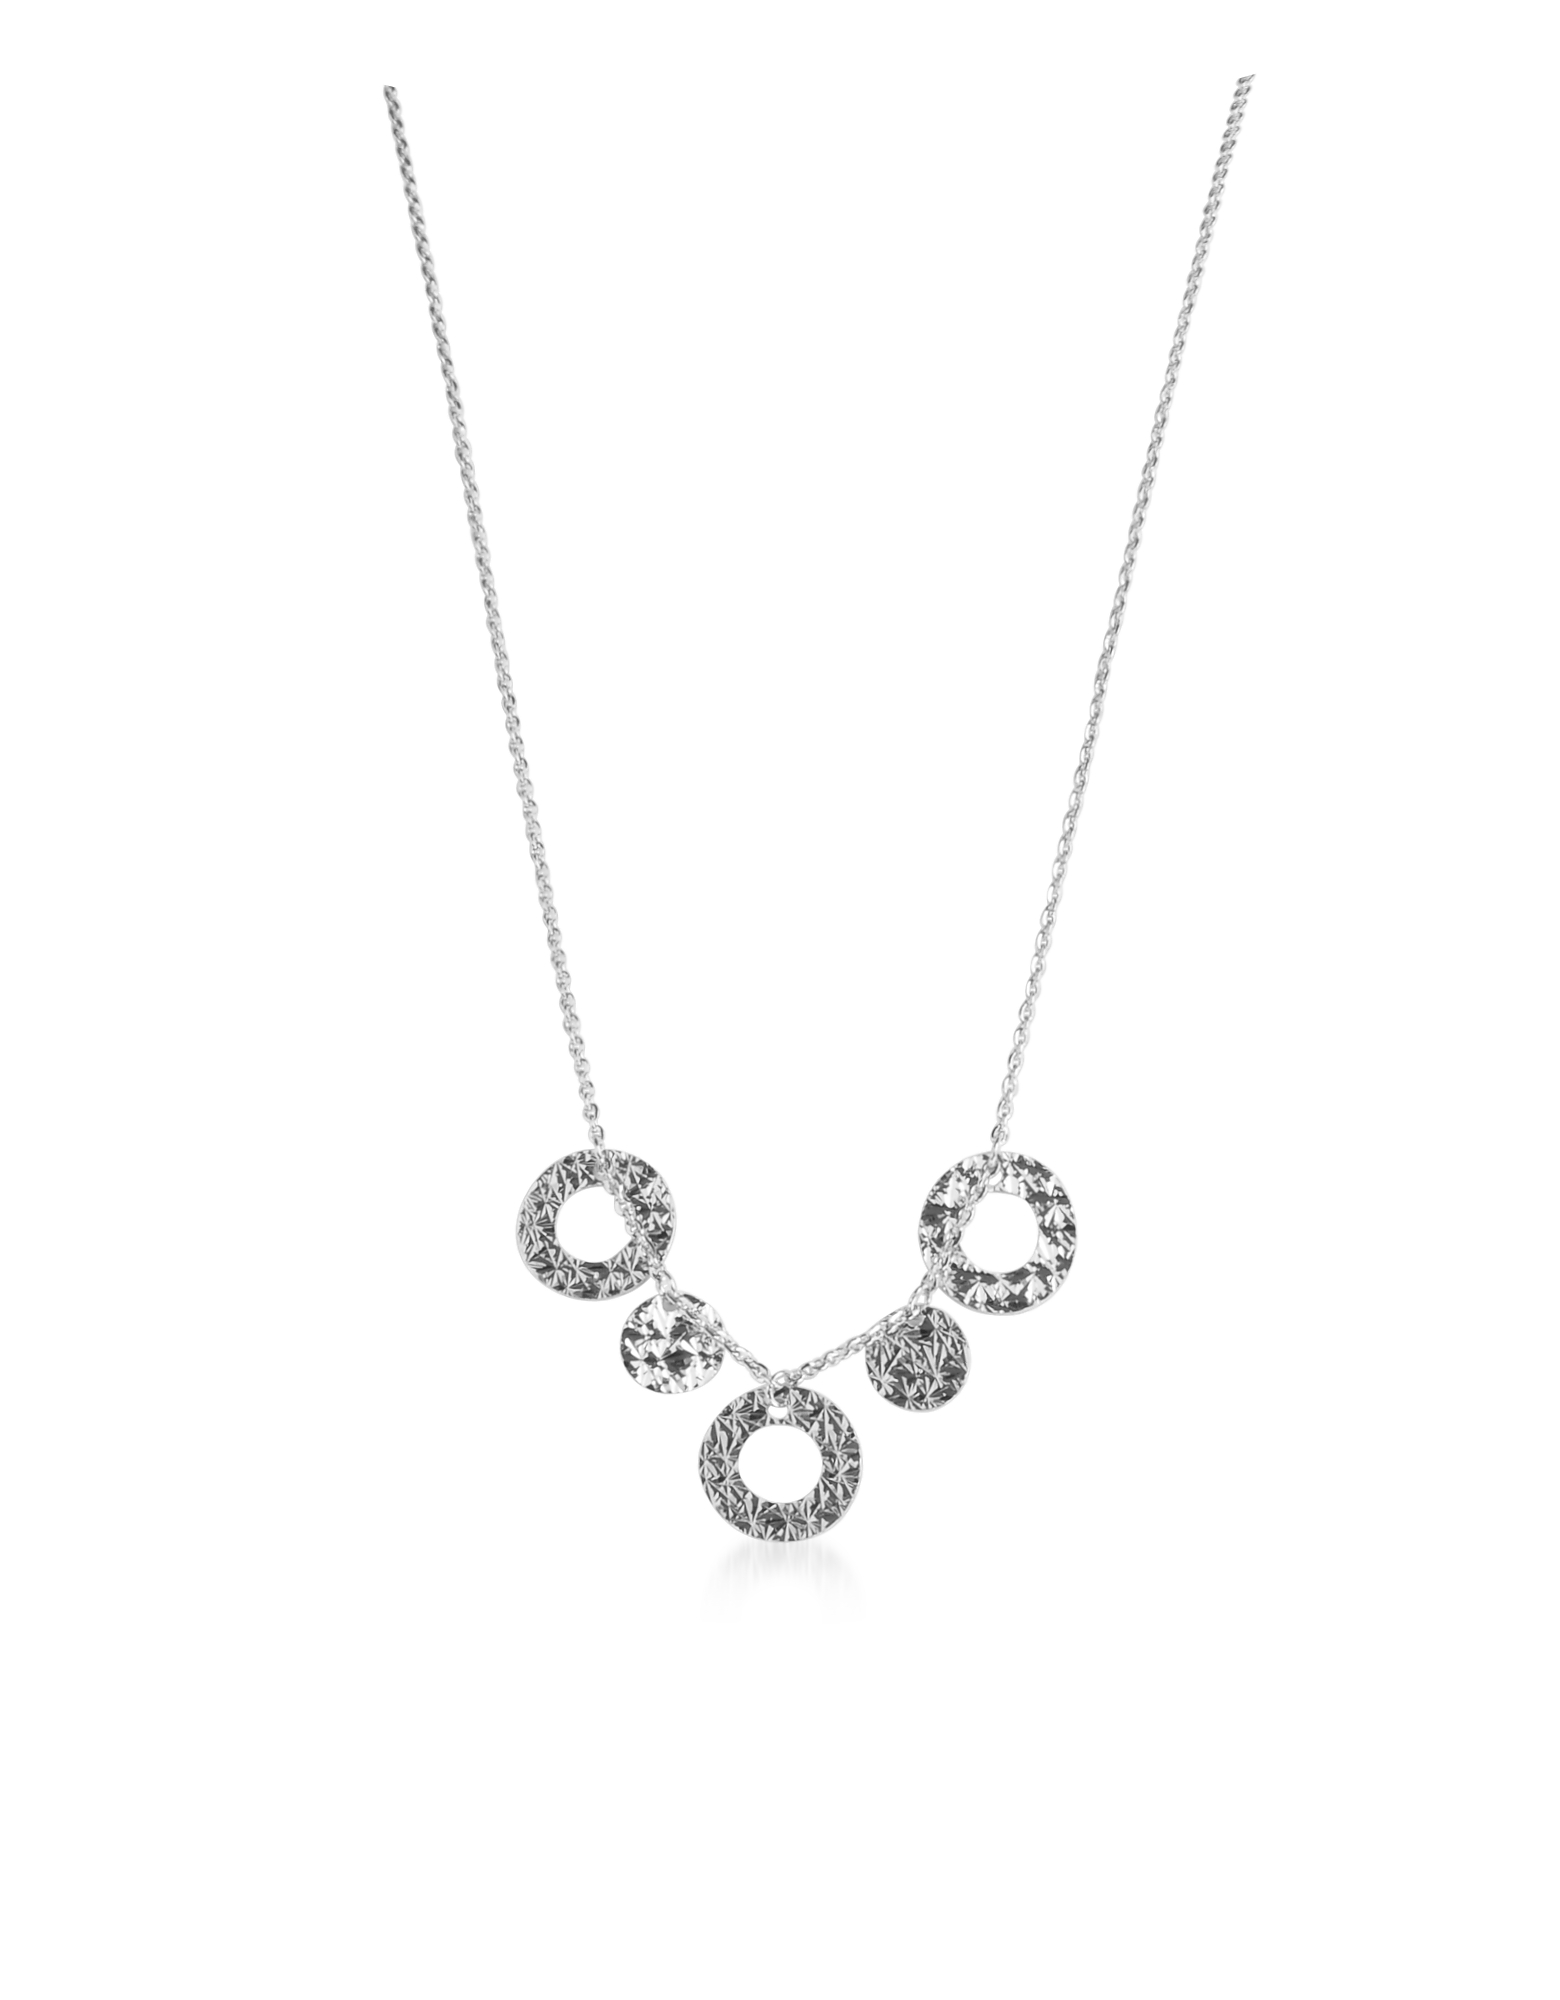 Rebecca Designer Necklaces, R-ZERO Rhodium Over Bronze Necklace